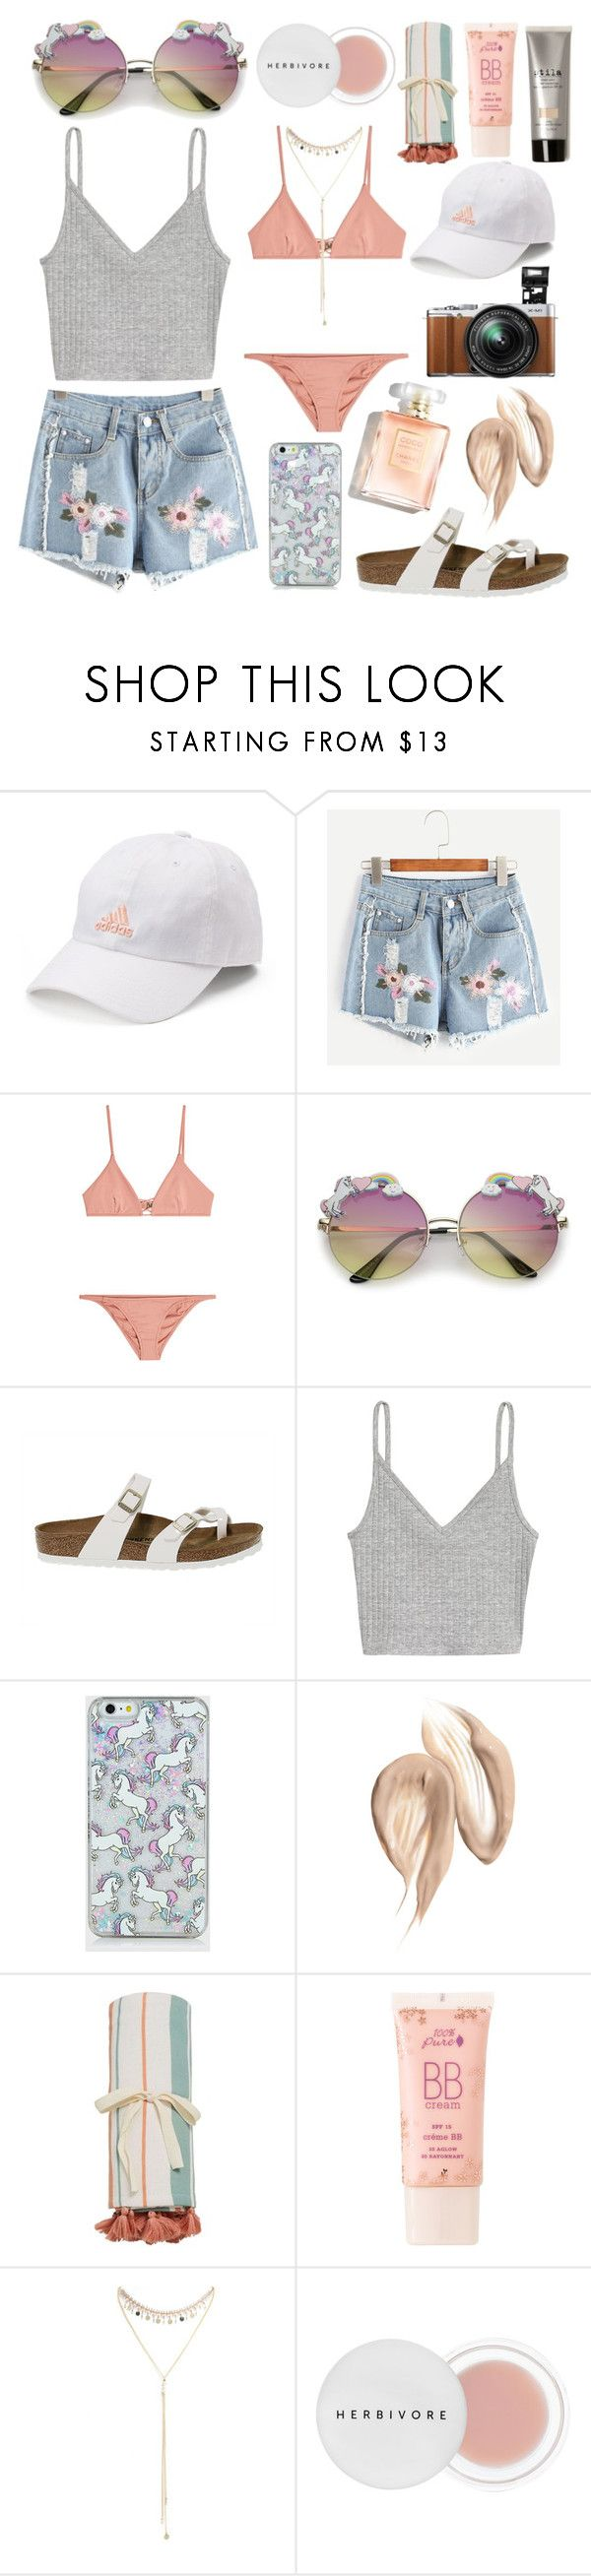 """""""Beachin' with the uniccorns"""" by shanelala ❤ liked on Polyvore featuring adidas, WithChic, Melissa Odabash, Fujifilm, Birkenstock, H&M, MANGO, 100% Pure, South Moon Under and Herbivore"""